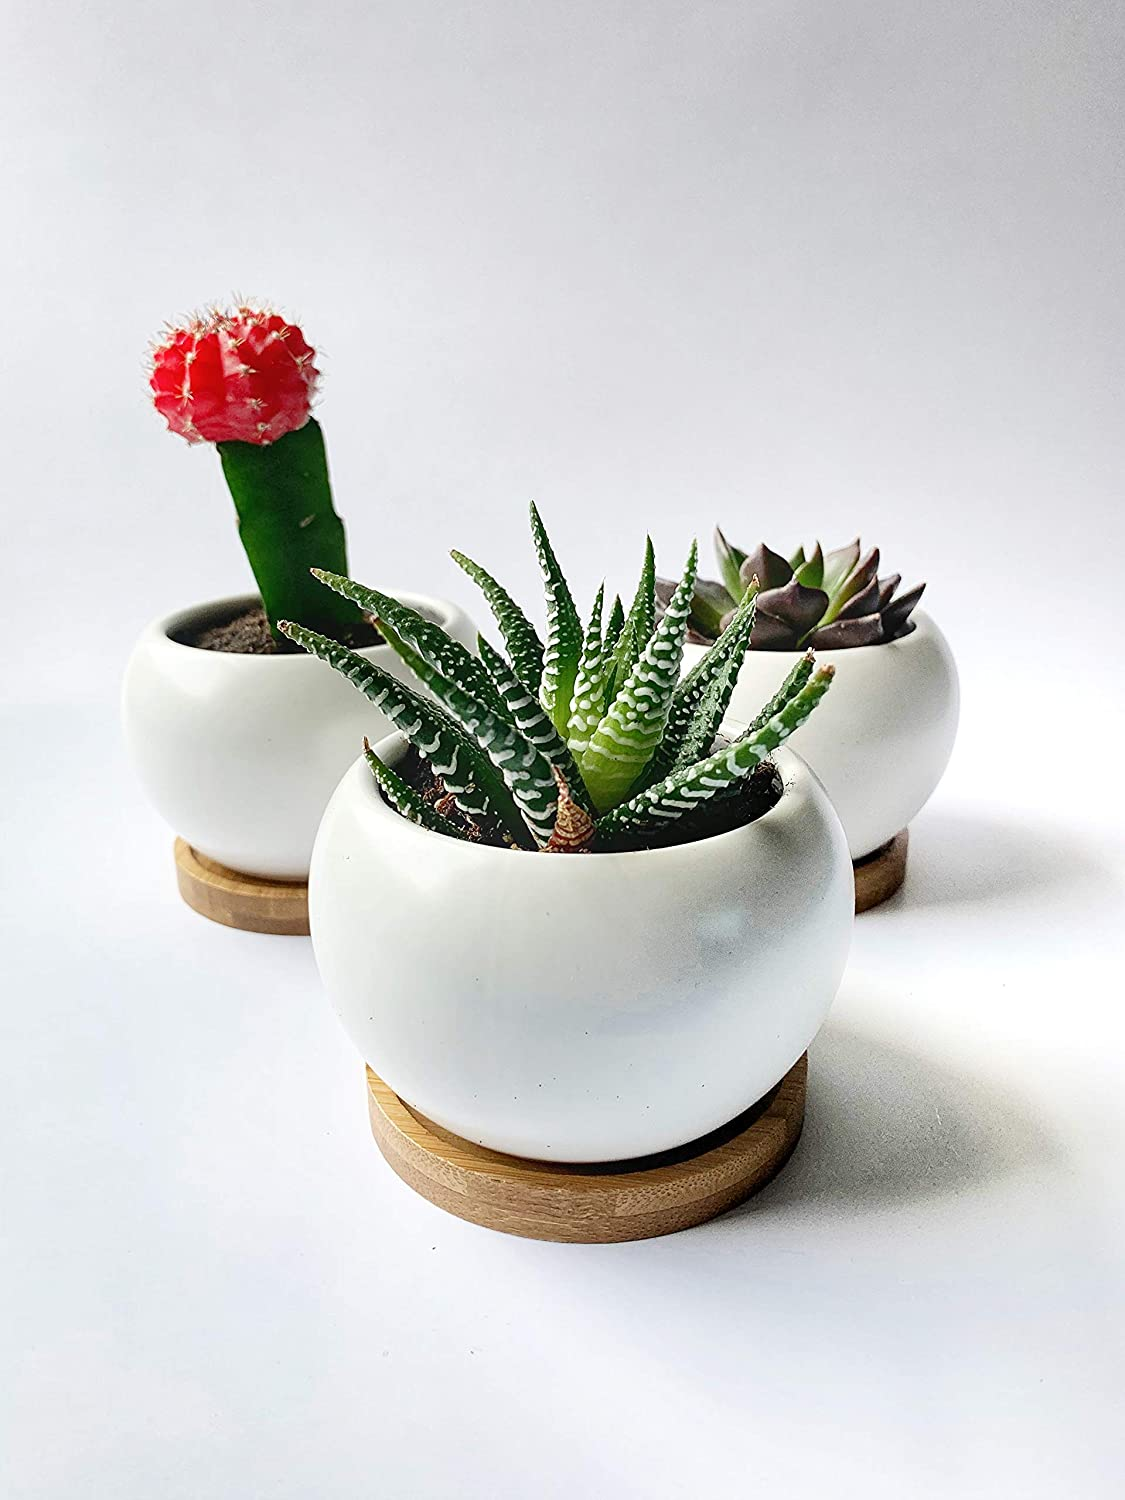 Succulent Pots, White Ceramic with Bamboo Tray, 3.5 inch, Set of 3